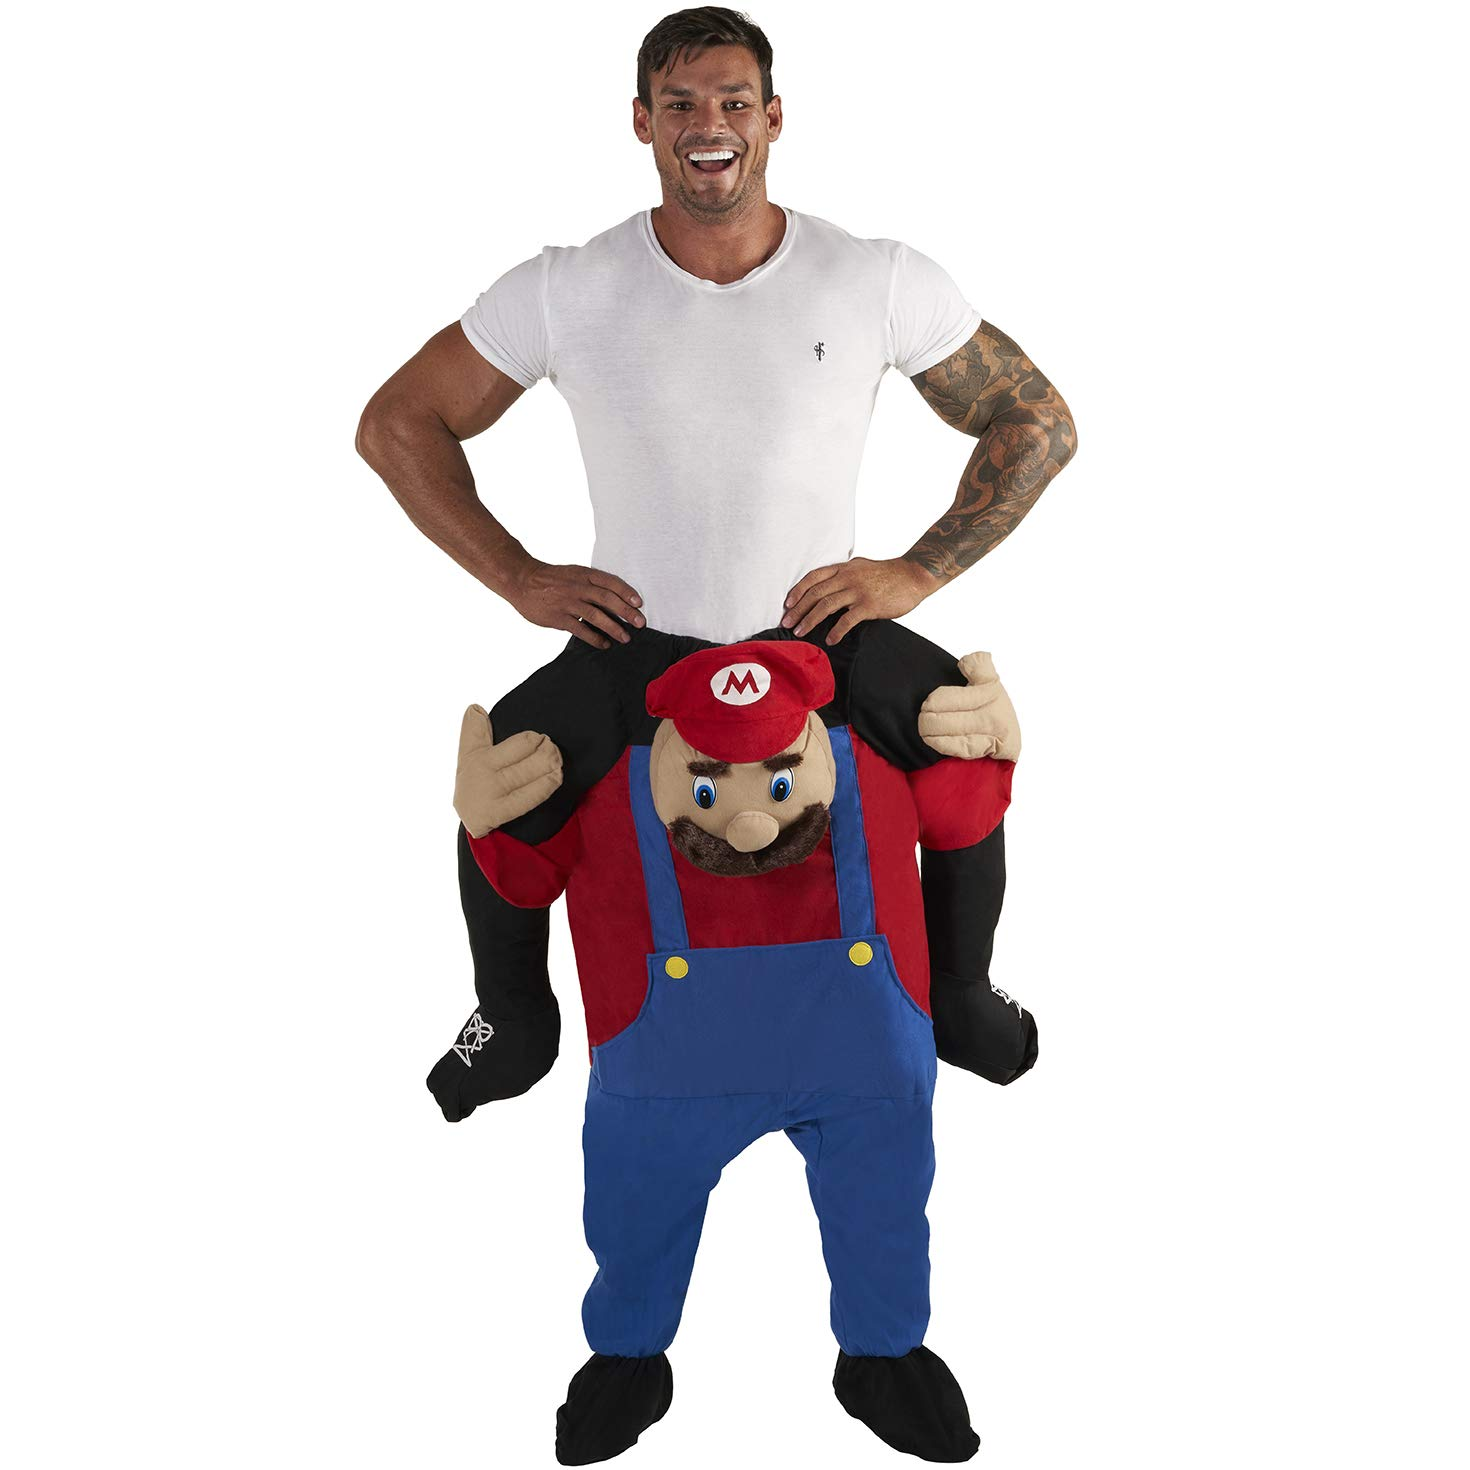 Morph Unisex Piggy Back Red Plumber Piggyback Costume - With Stuff Your Own Legs by Morph